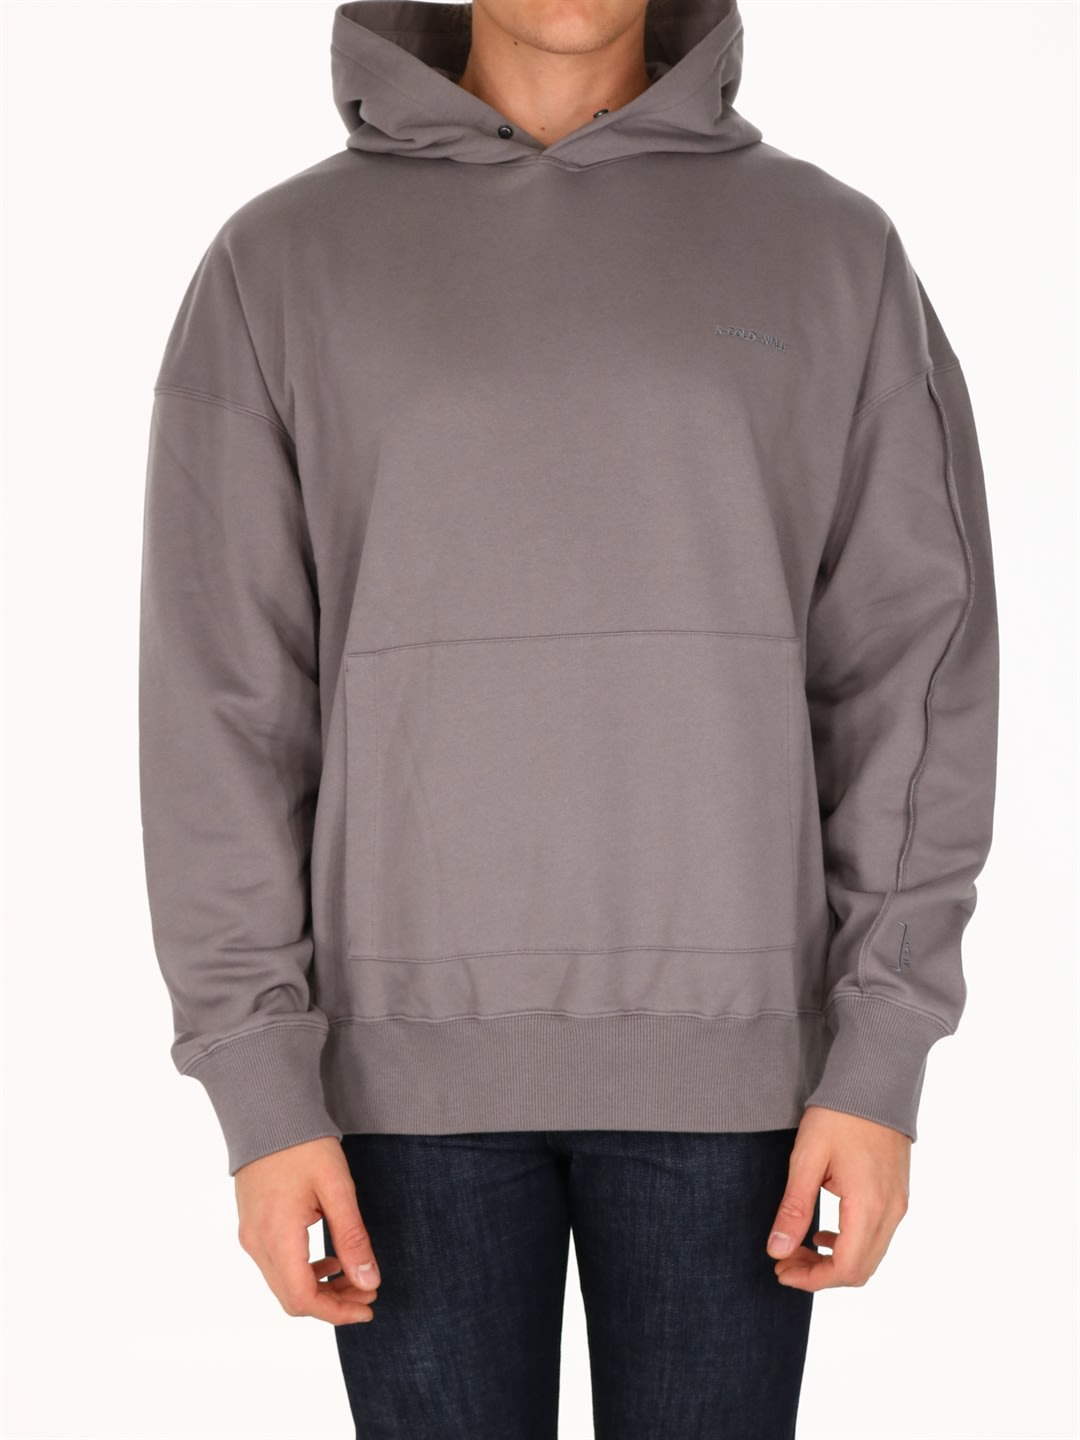 A-COLD-WALL Gray Cotton Sweatshirt